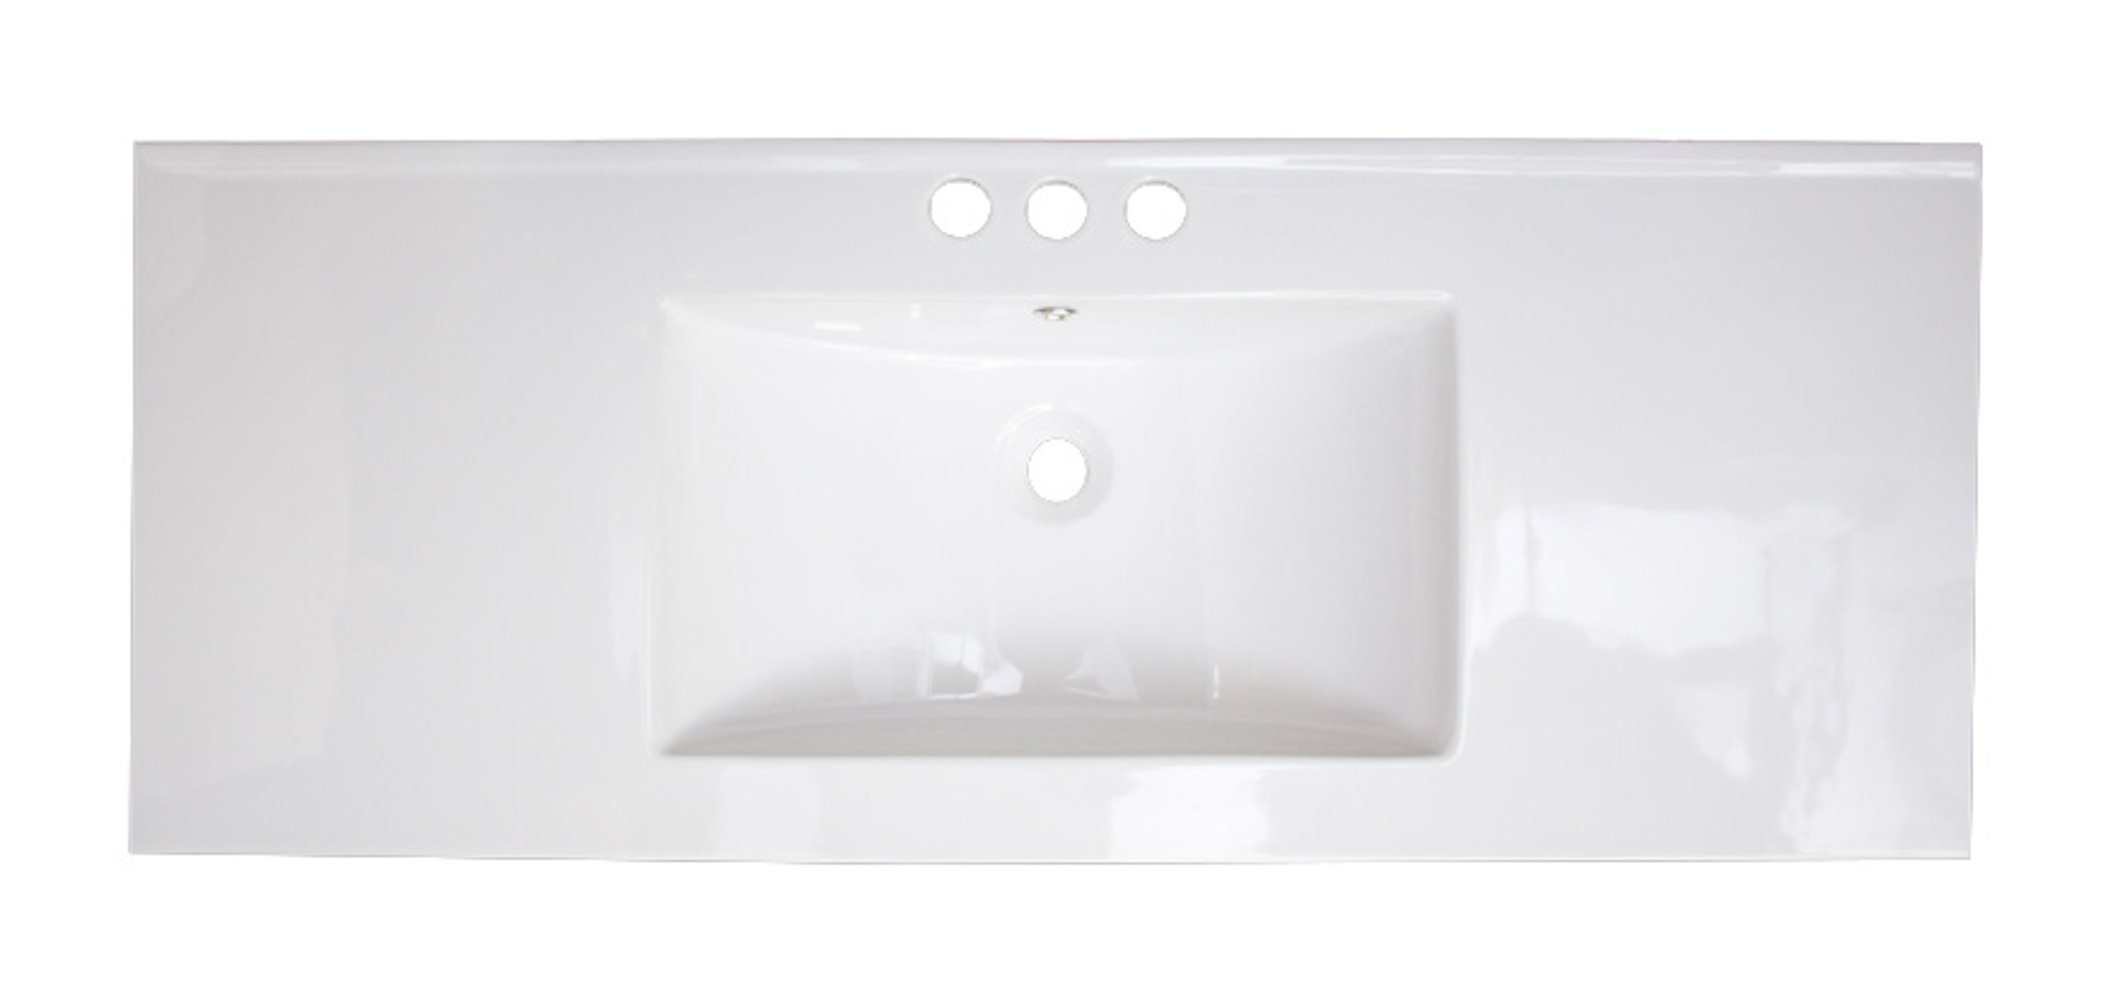 American Imaginations AI-4-1755 Ceramic Top for 8-Inch OC Faucet, 49-Inch x 22-Inch, White by American Imaginations